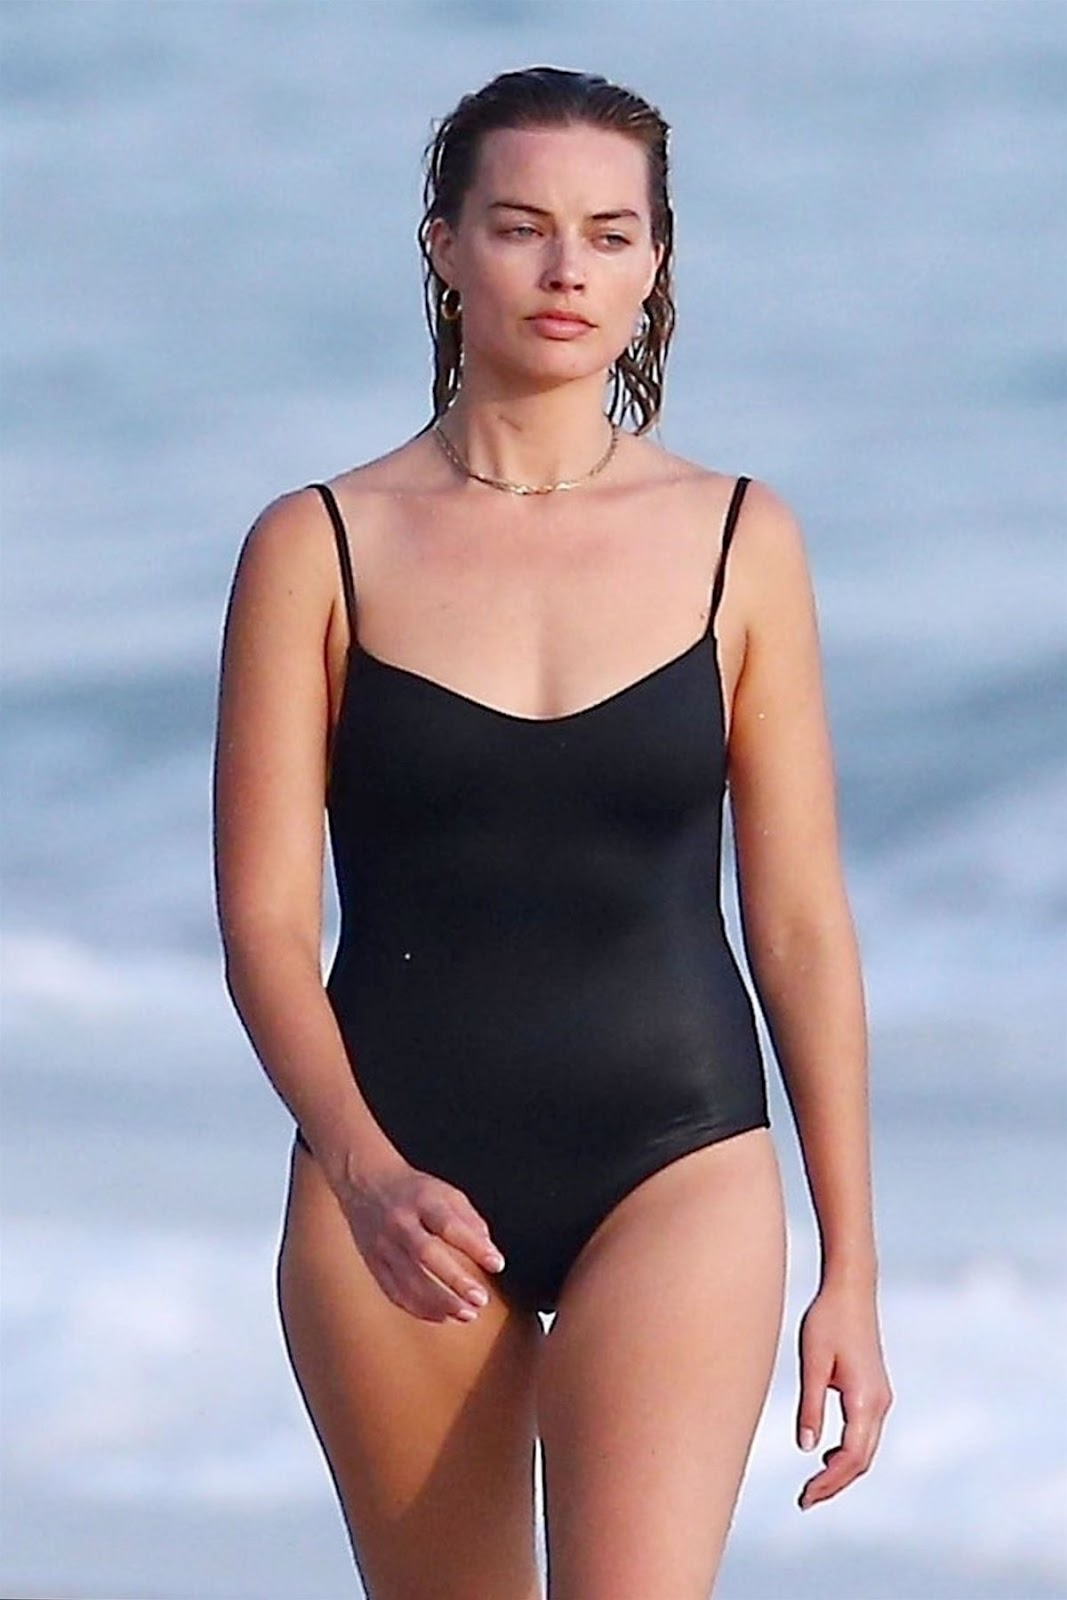 Margot Robbie in Swimsuit on the Beach in Costa Rica, 07